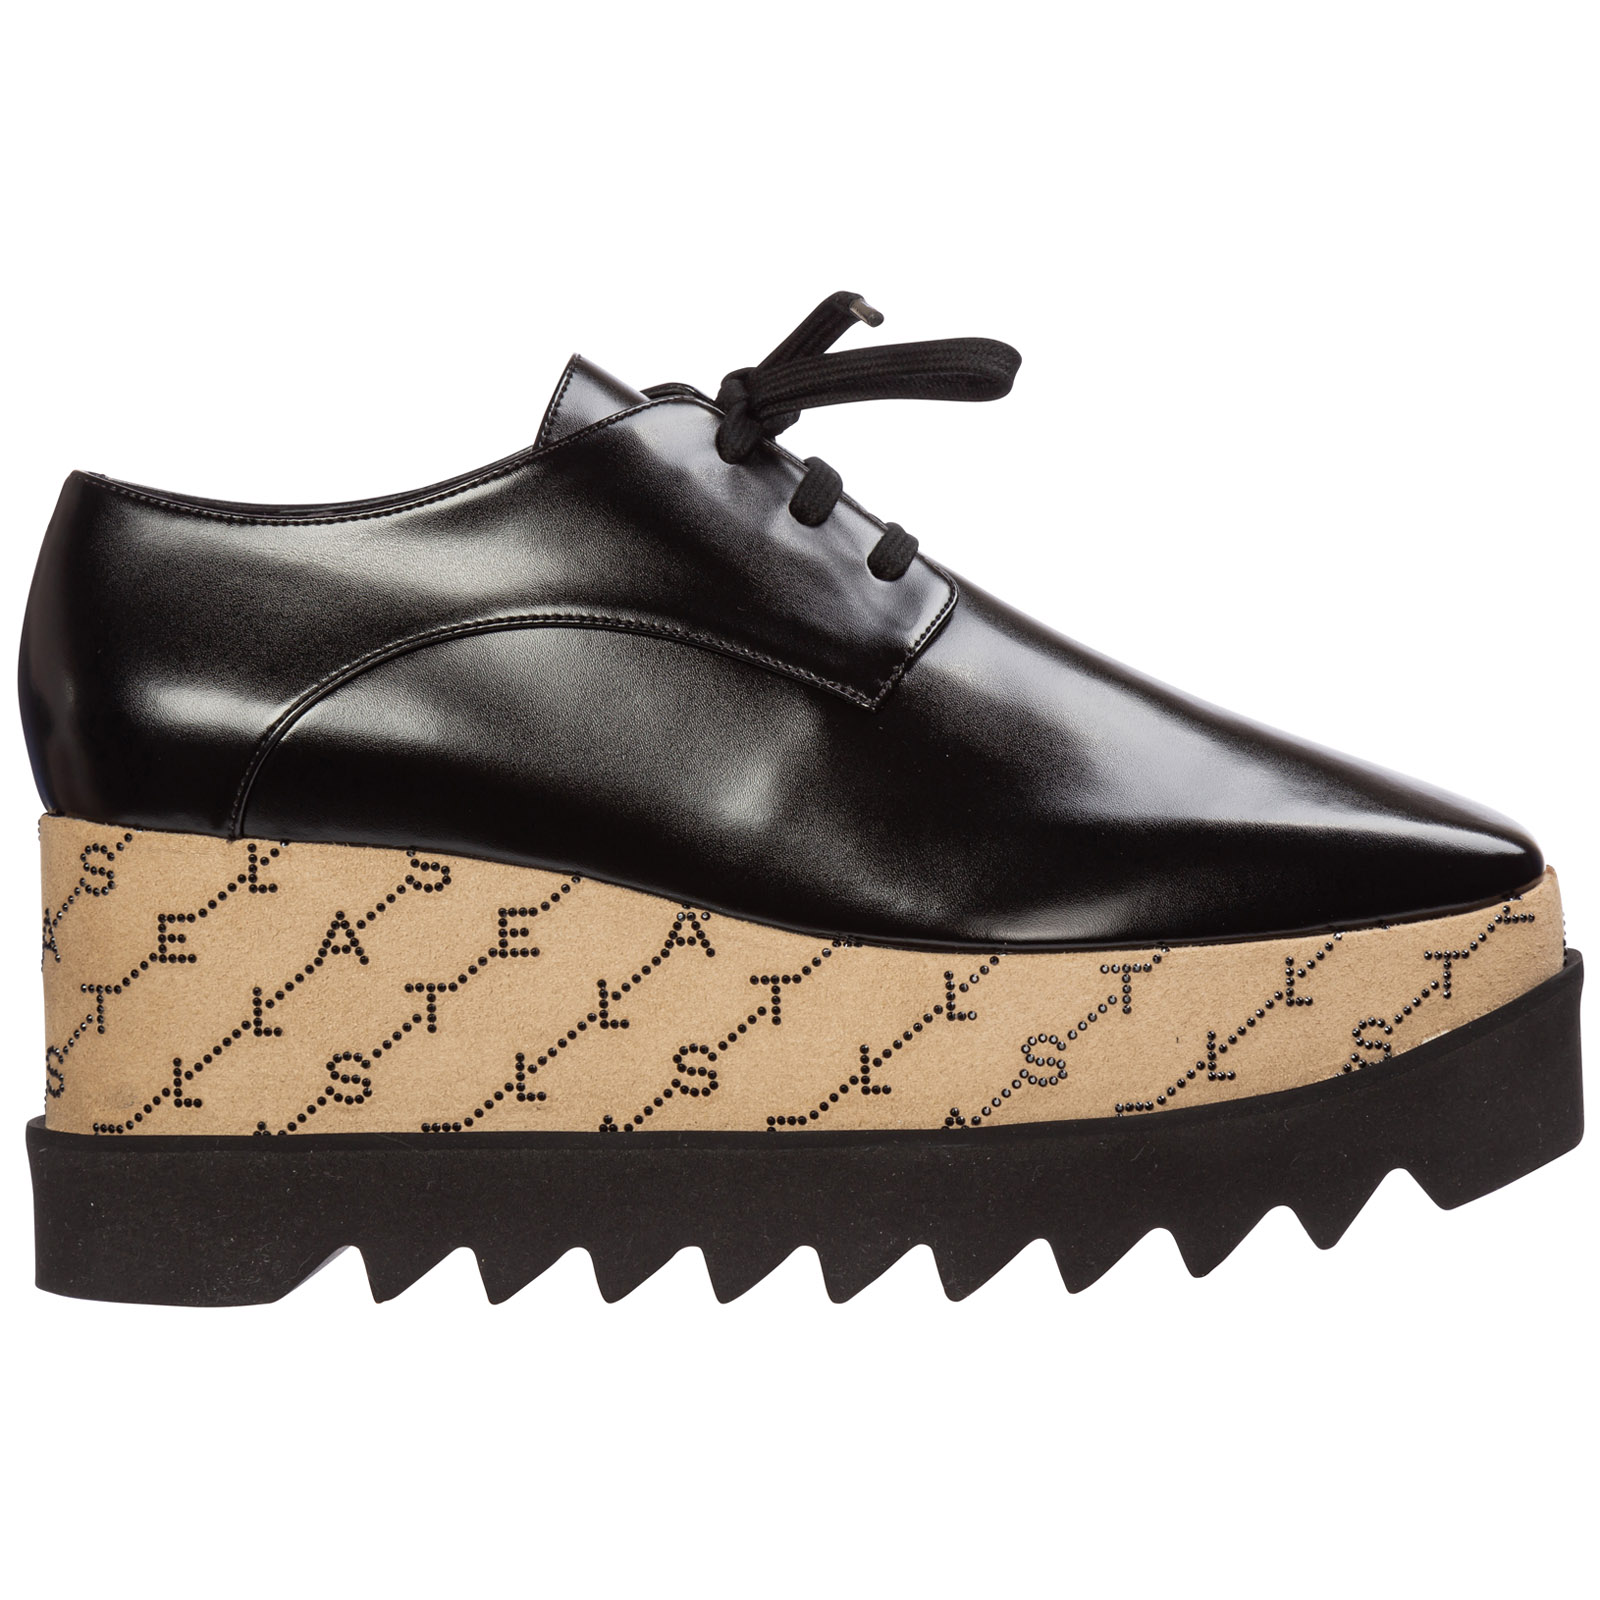 Stella Mccartney Shoes WOMEN'S CLASSIC LACE UP LACED FORMAL SHOES DERBY ELYSE